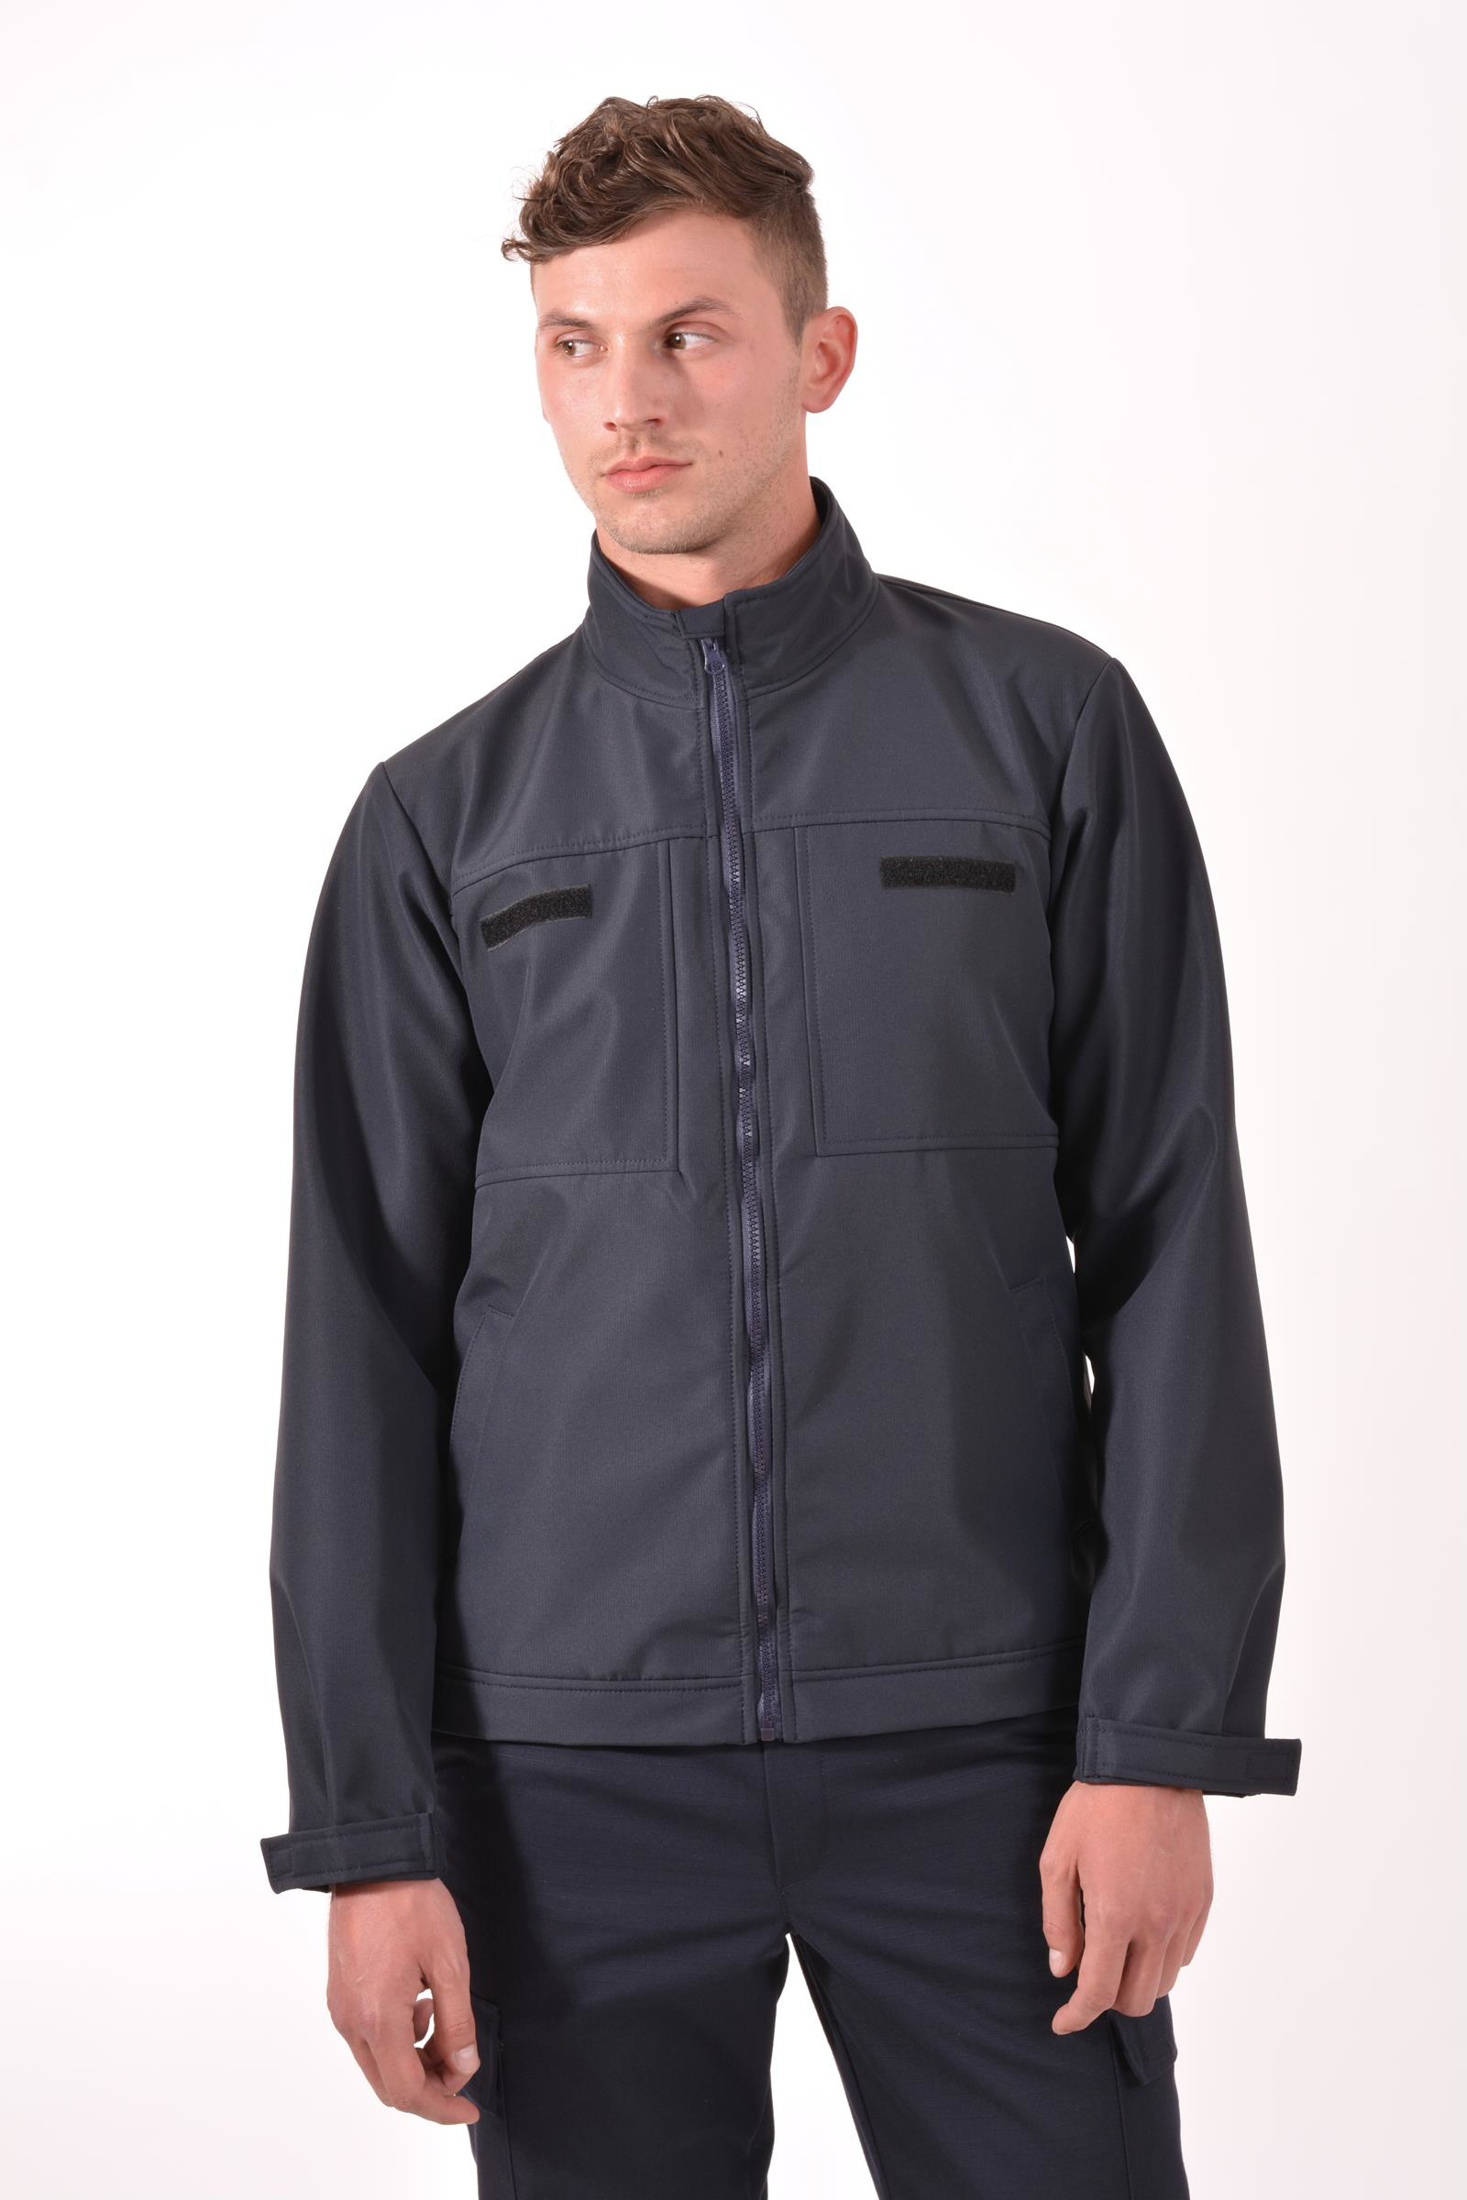 muška jakna soft shell, vodootporna, vjetrootporna. men's jacket soft shell, water repellent, windproof